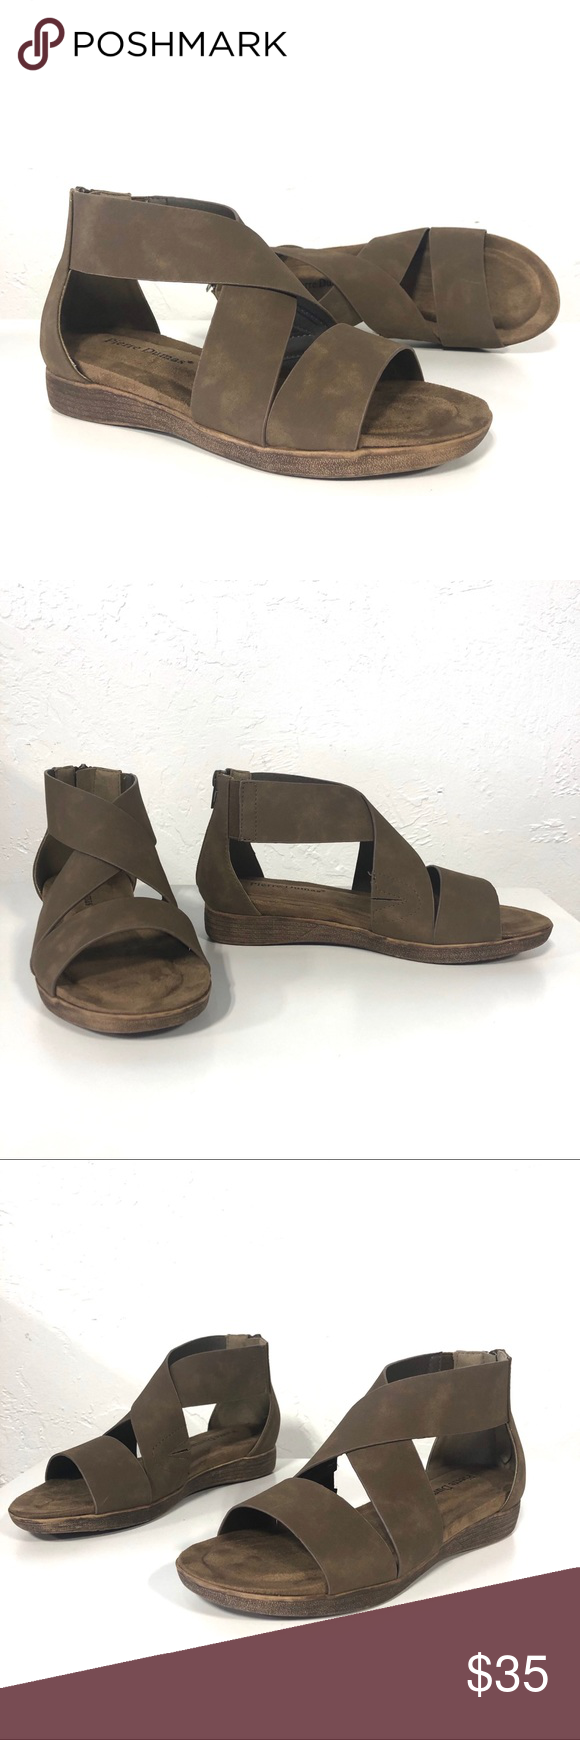 Pierre Dumas Kori Taupe Low Wedge Sandals Super comfy taupe Strappy Sandals by Pierre Dumas. Featuring a faux leather distressed look, this a must have for this year. Medium width and true to size. Pierre Dumas Shoes Sandals #lowwedgesandals Pierre Dumas Kori Taupe Low Wedge Sandals Super comfy taupe Strappy Sandals by Pierre Dumas. Featuring a faux leather distressed look, this a must have for this year. Medium width and true to size. Pierre Dumas Shoes Sandals #lowwedgesandals Pierre Dumas Kor #lowwedgesandals